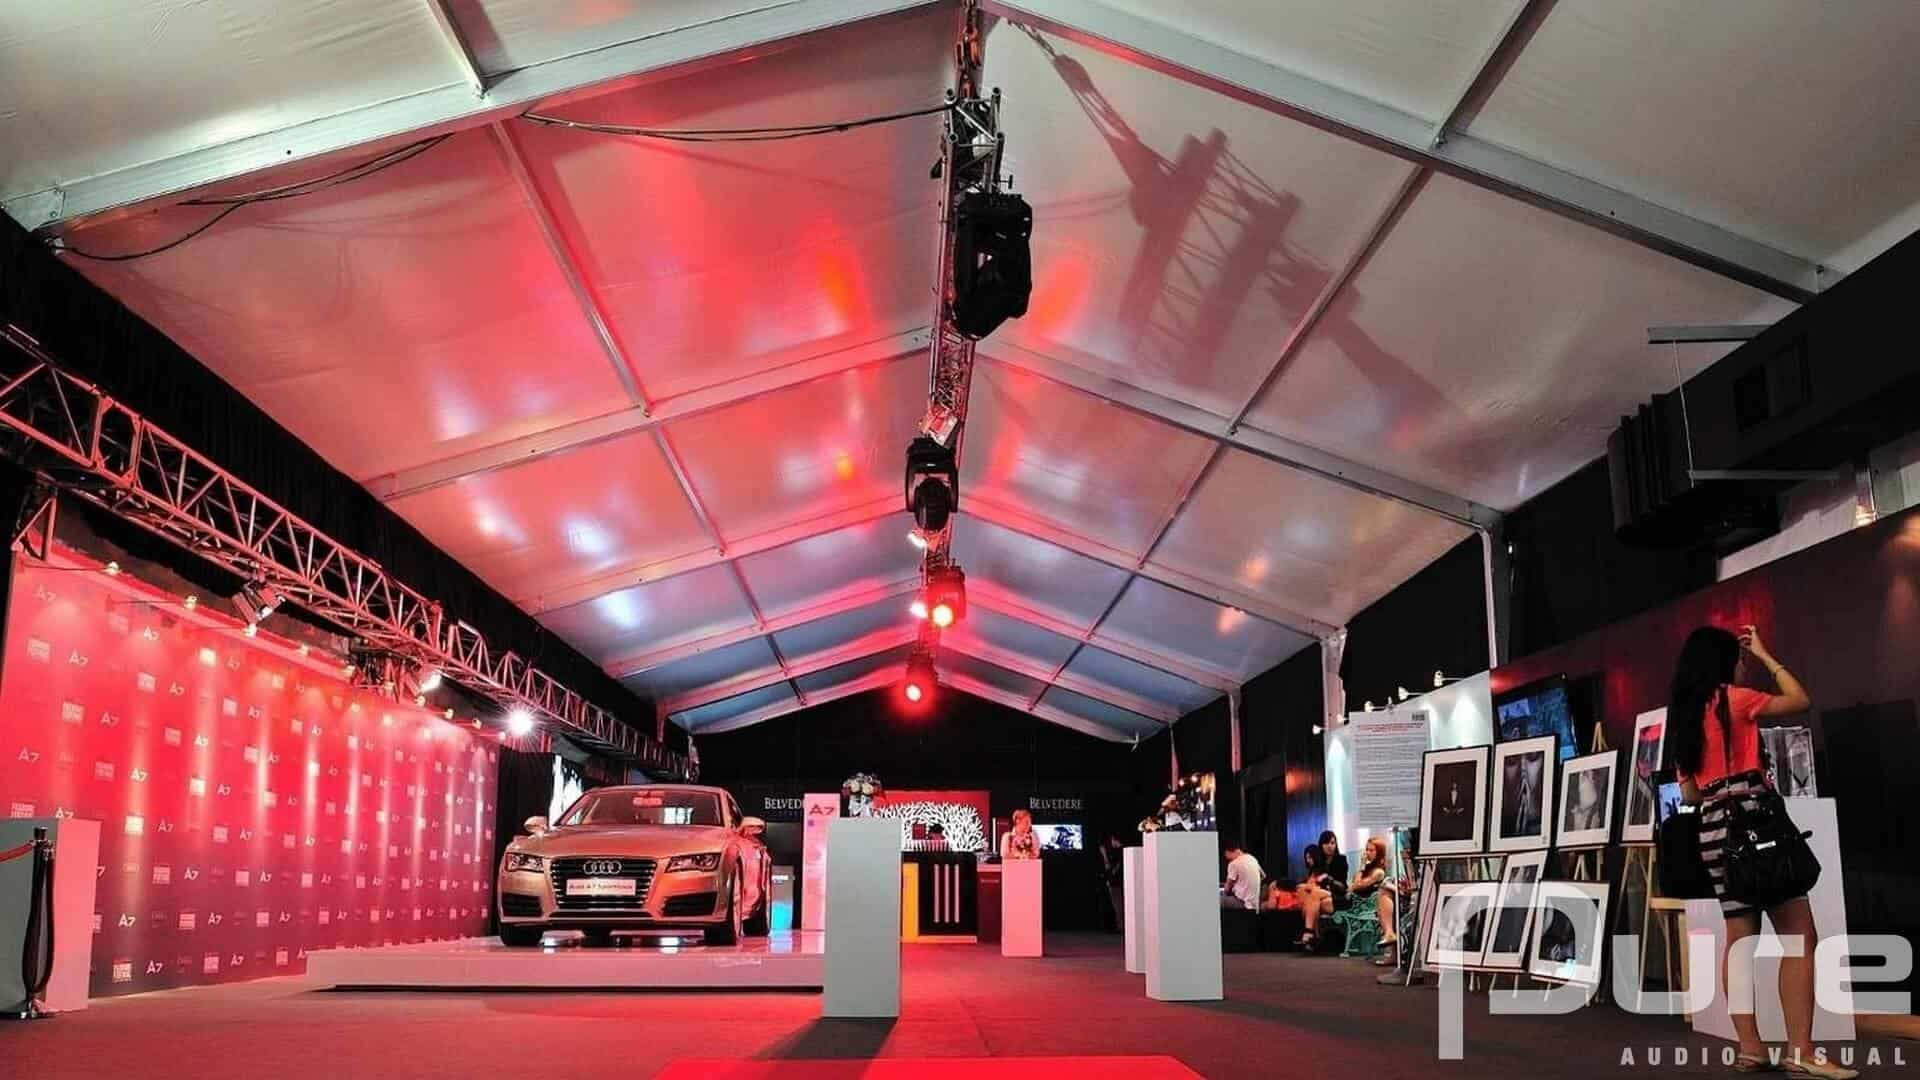 expo activation with lighting, staging and video gear